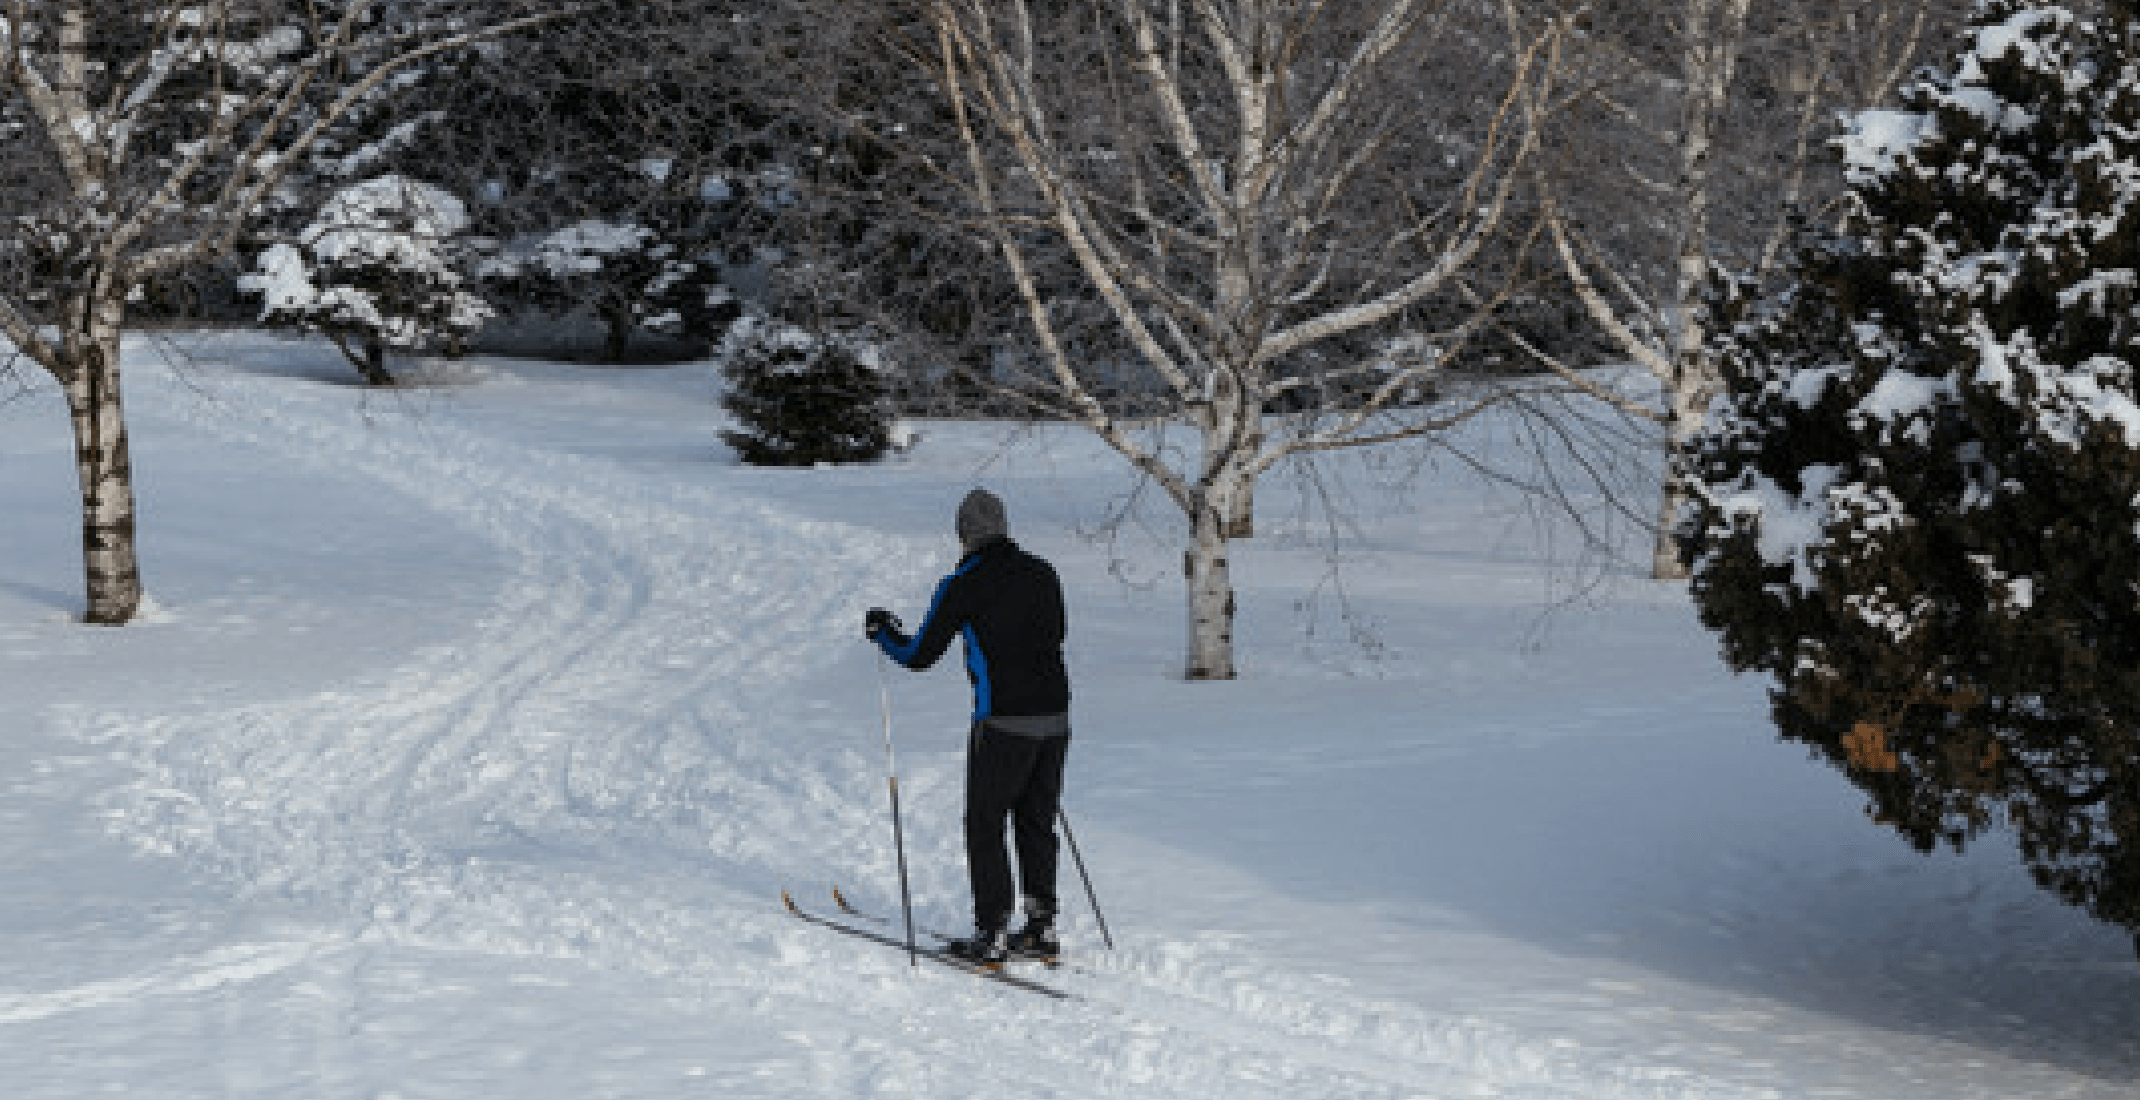 You can go cross country skiing at the Montreal Botanical Garden this winter